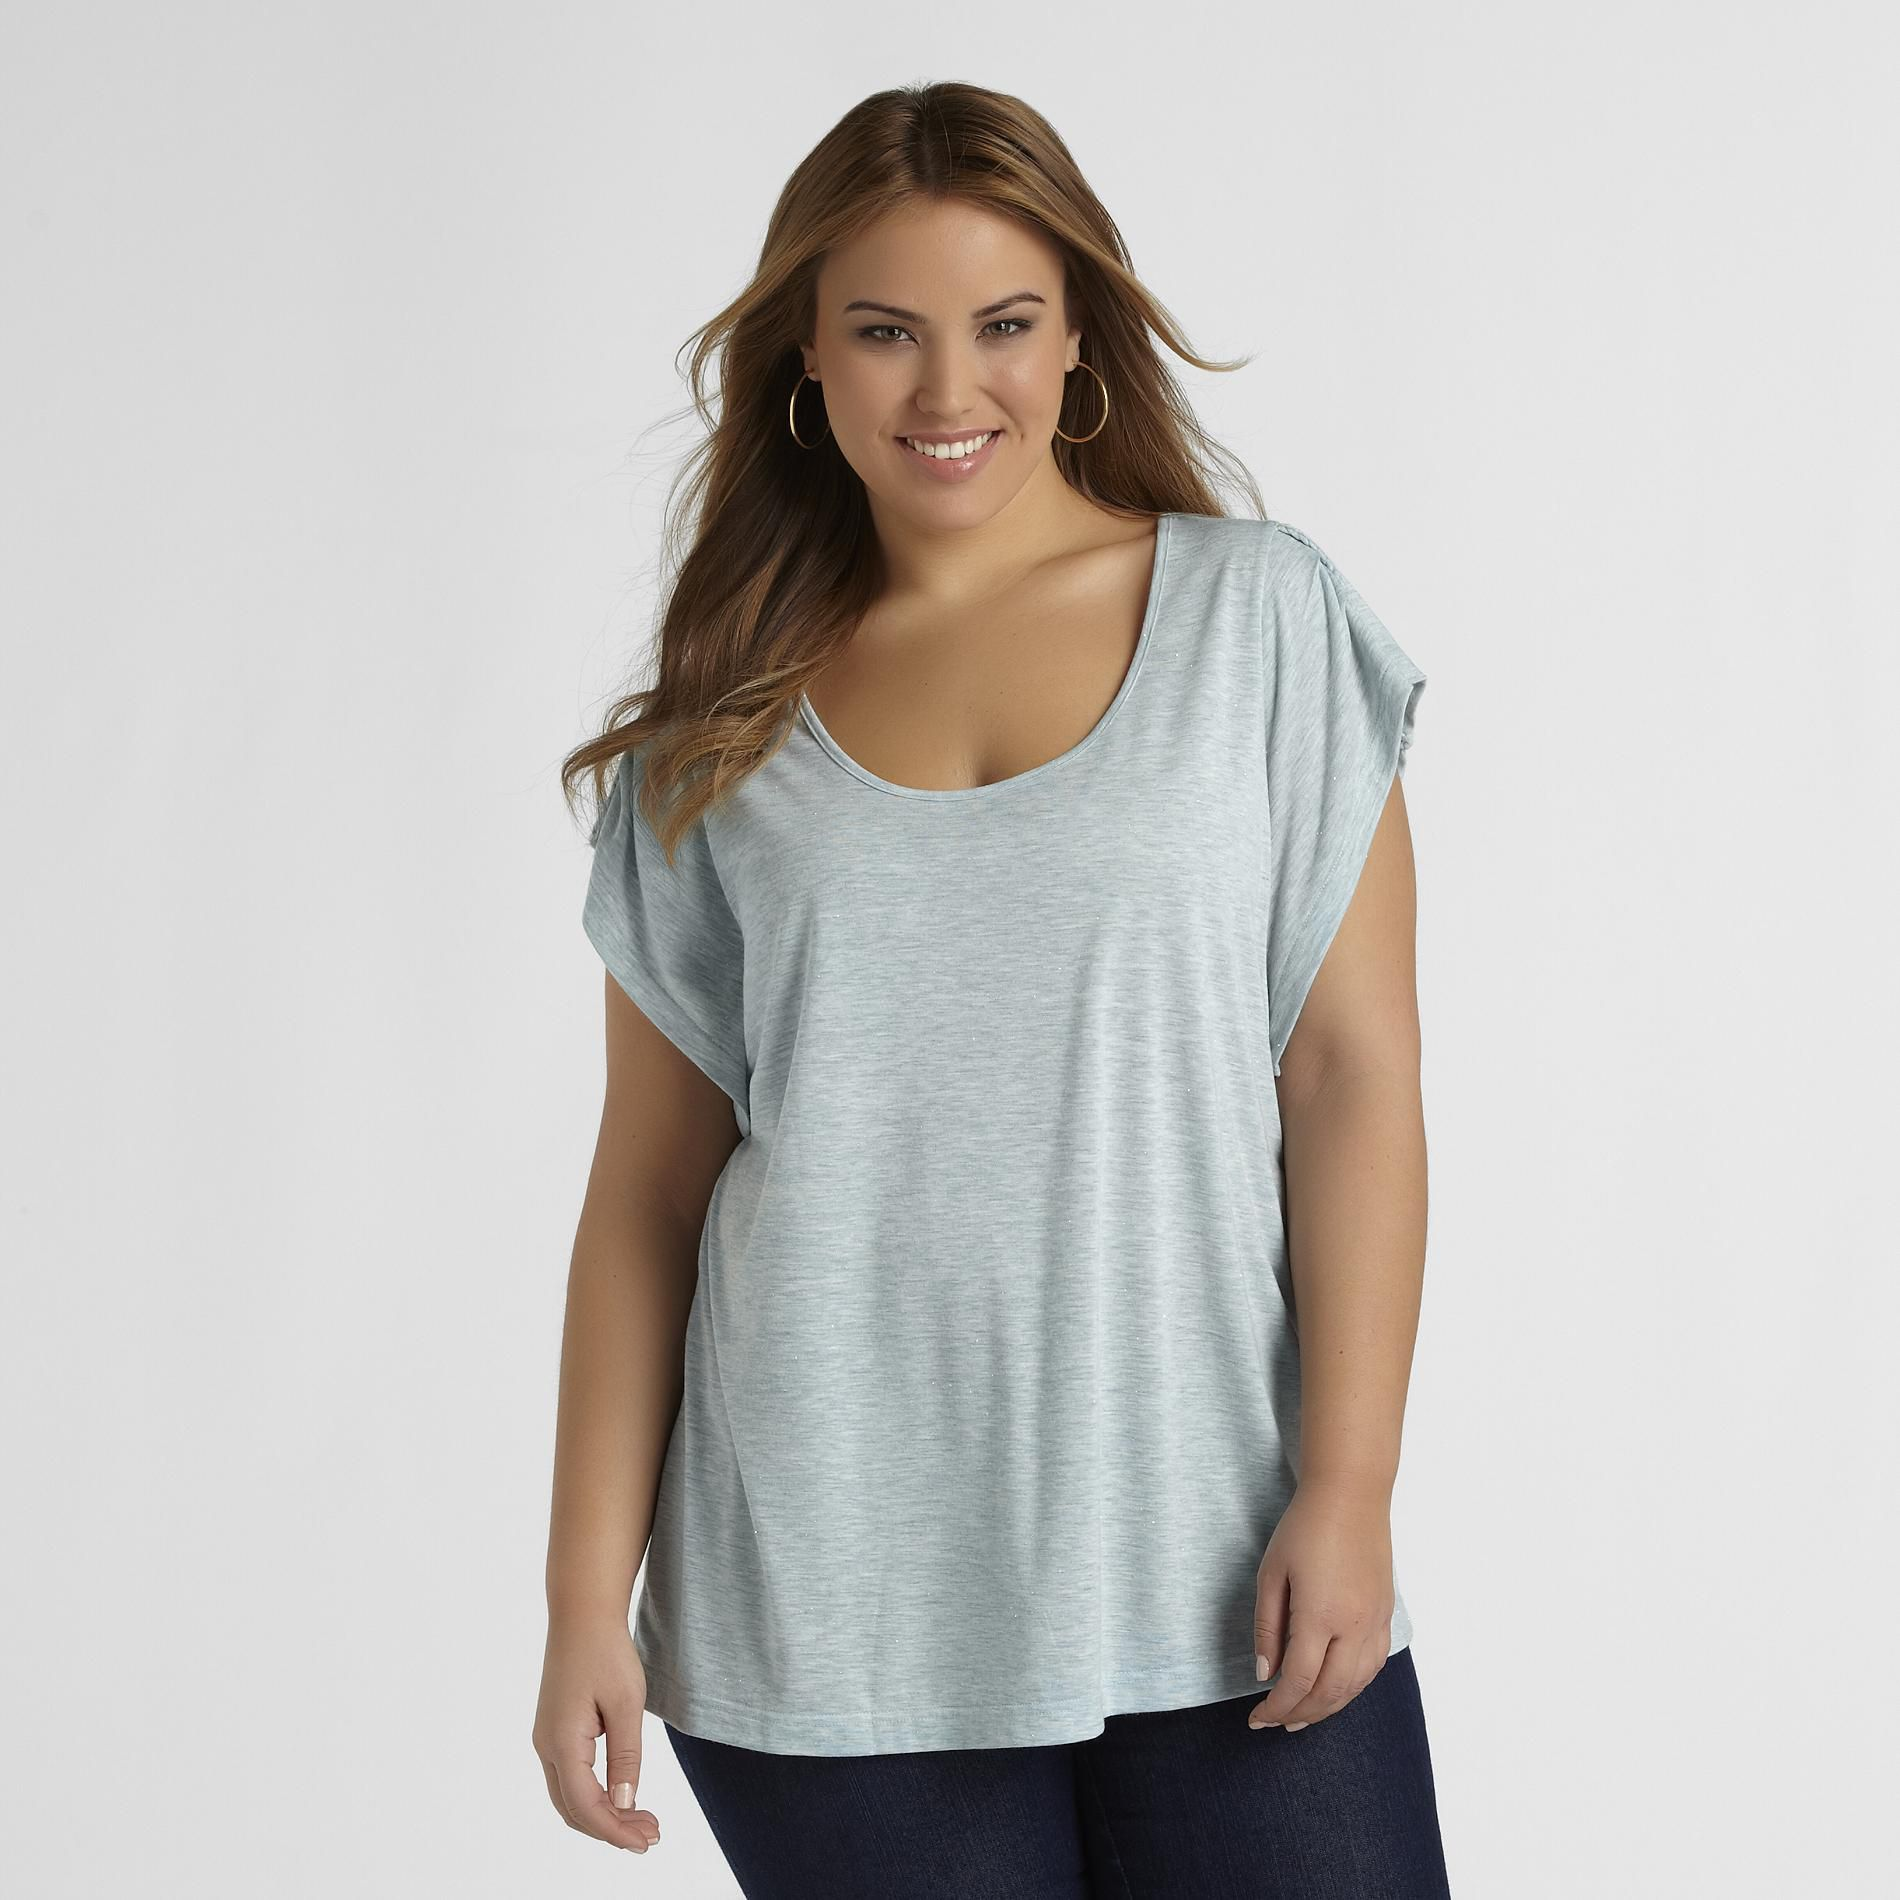 Love Your Style, Love Your Size Women's Plus Braided Back T-Shirt at Kmart.com